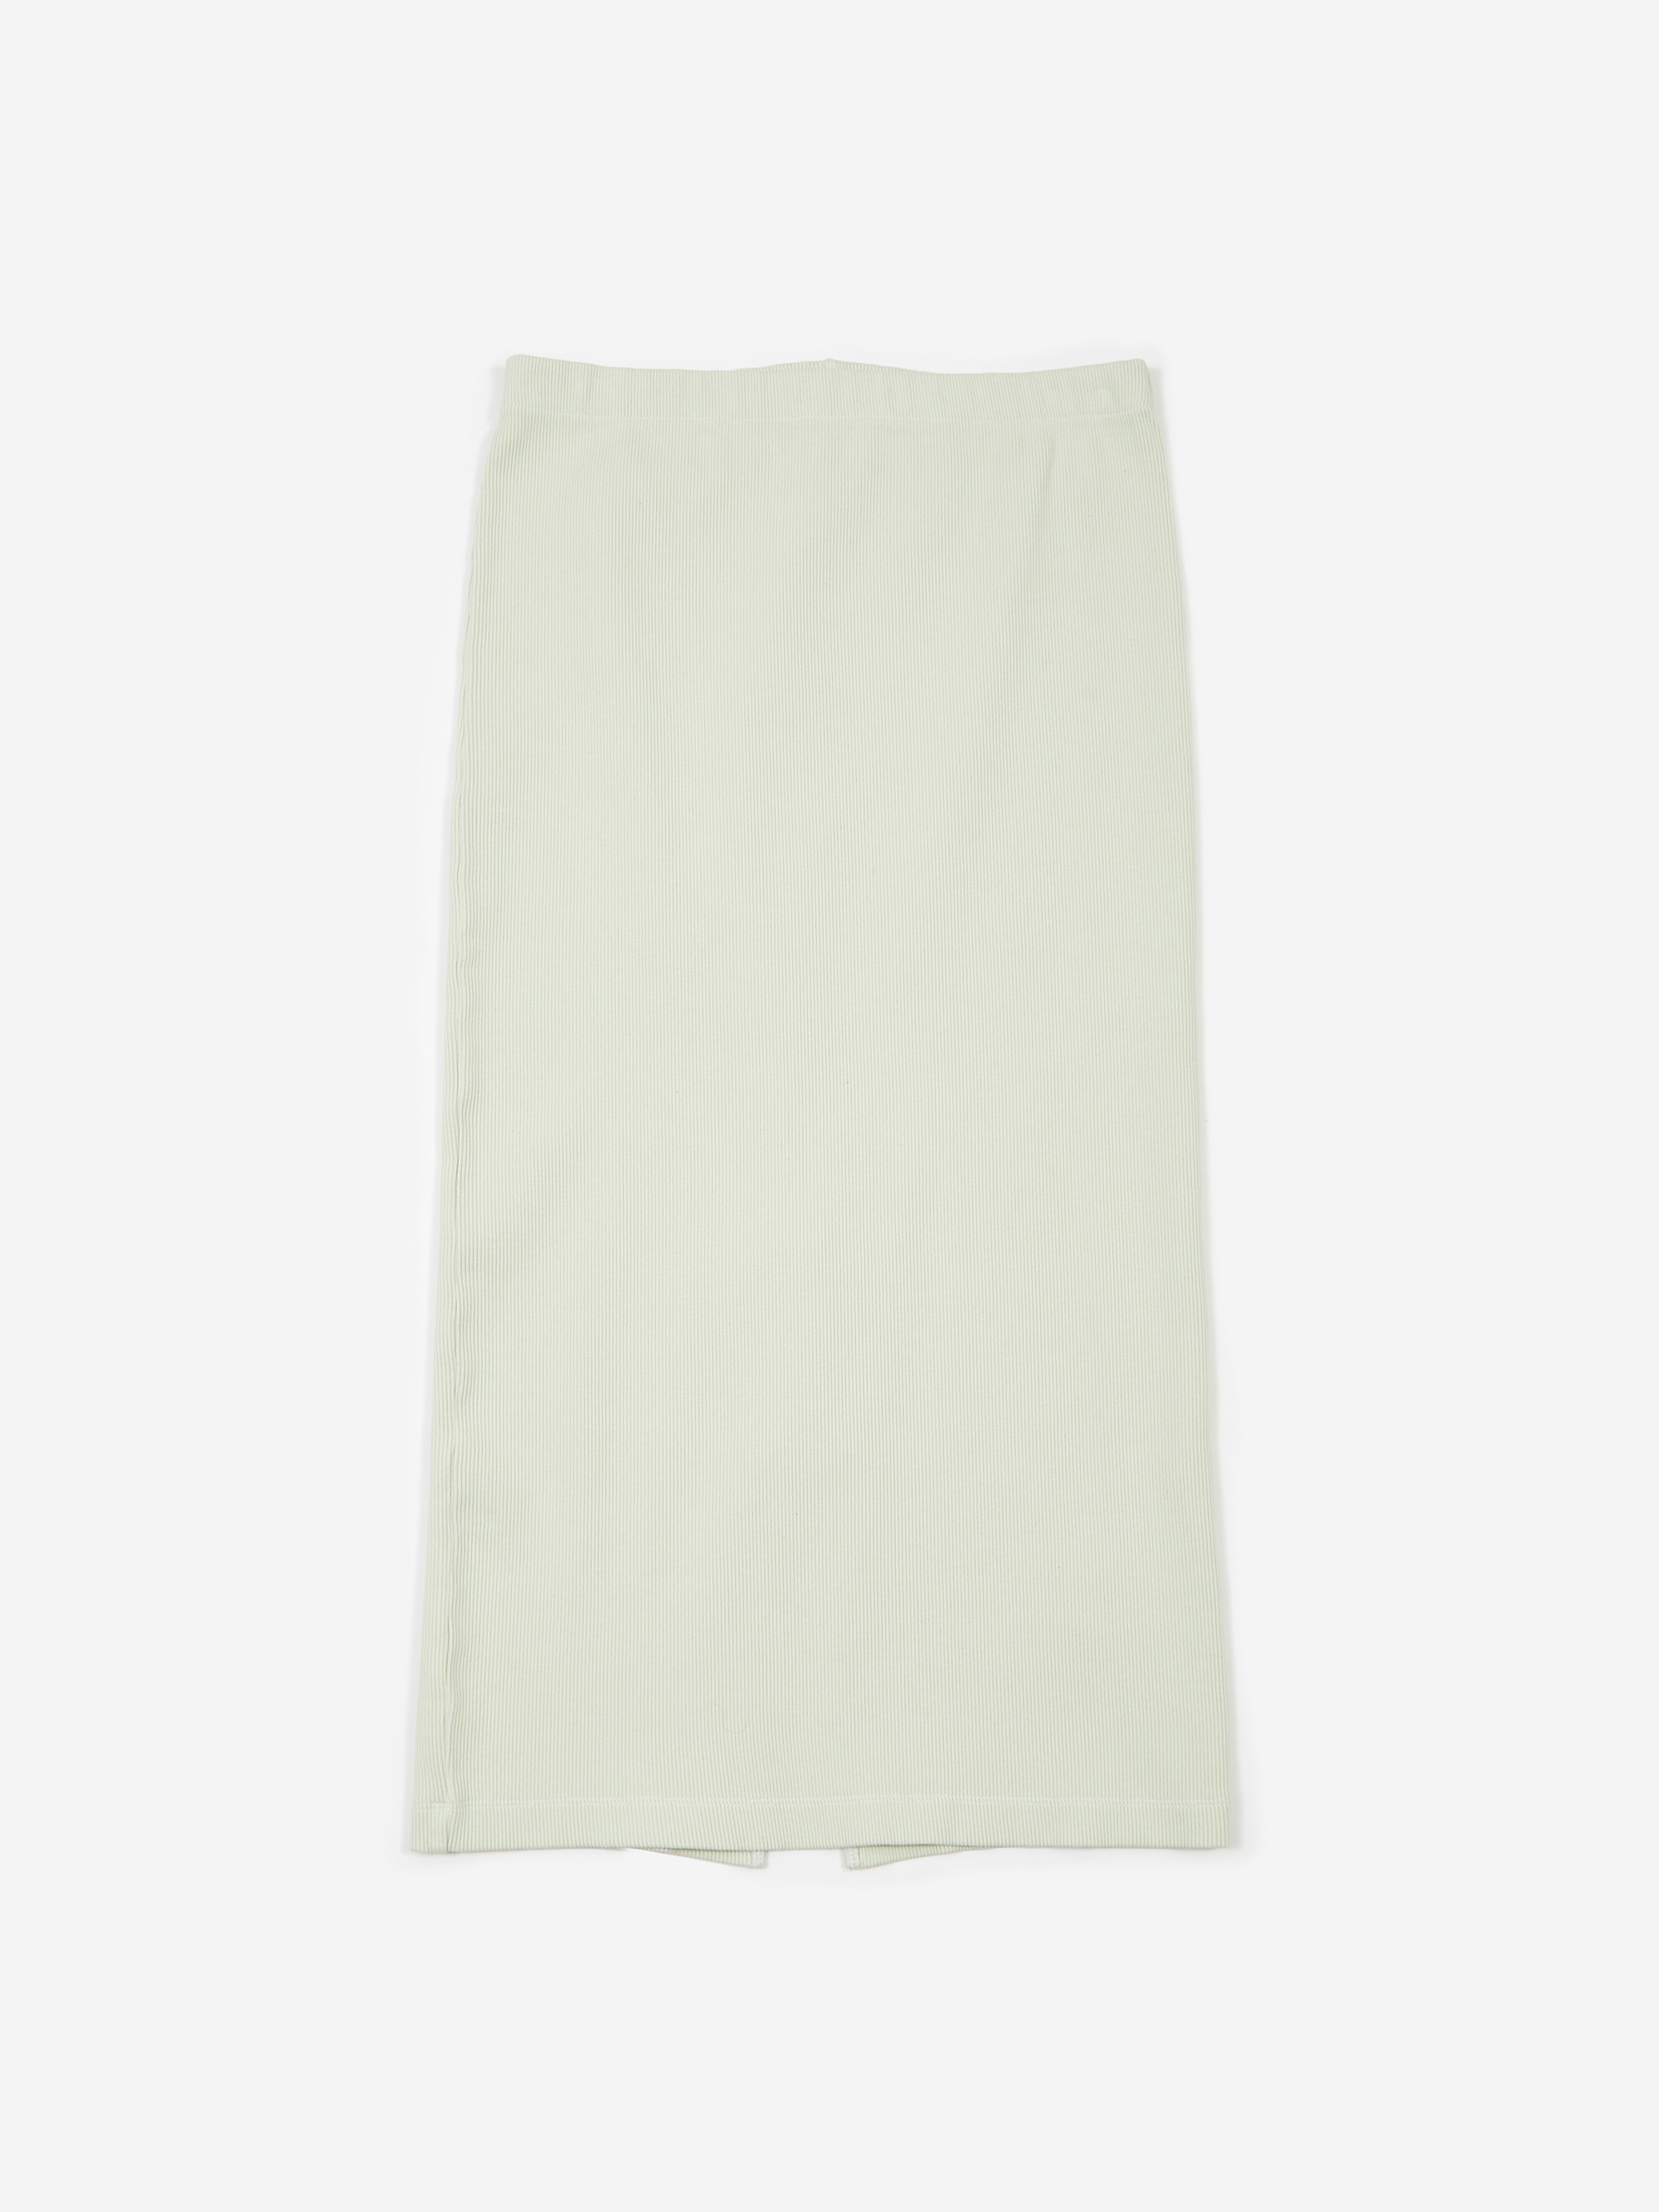 2492556d21 Our Legacy Rib Tube Skirt - Translucent White